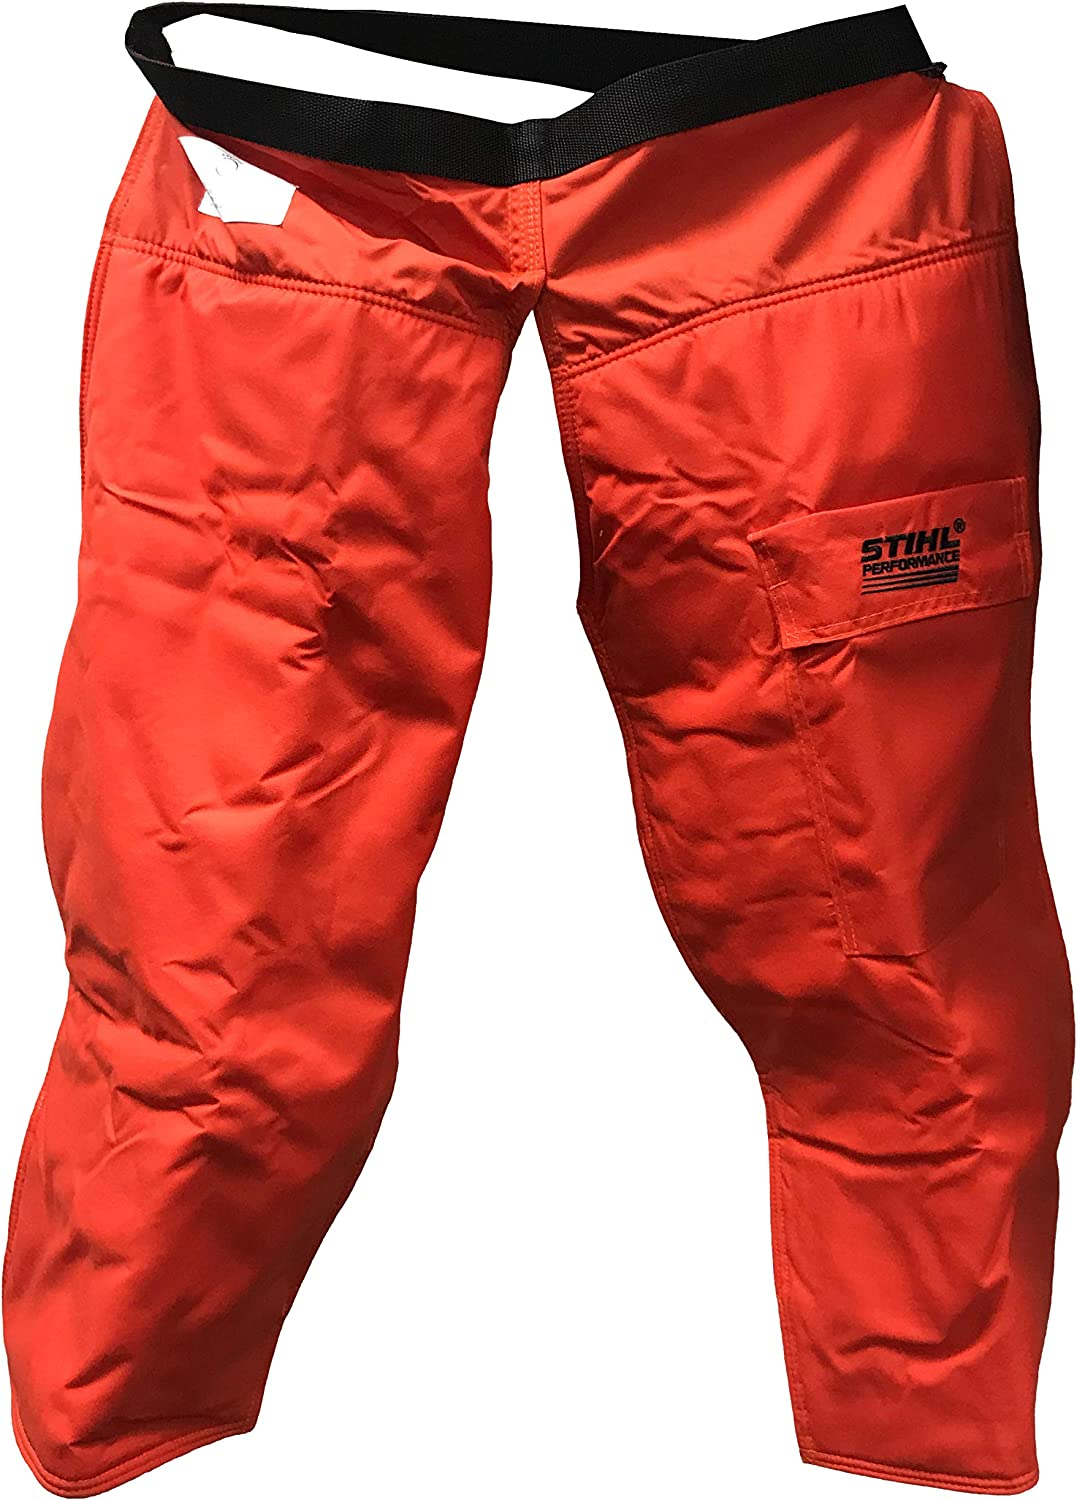 4. STIHL 0000 886 3202 36-Inch Protective Apron Chainsaw Chaps